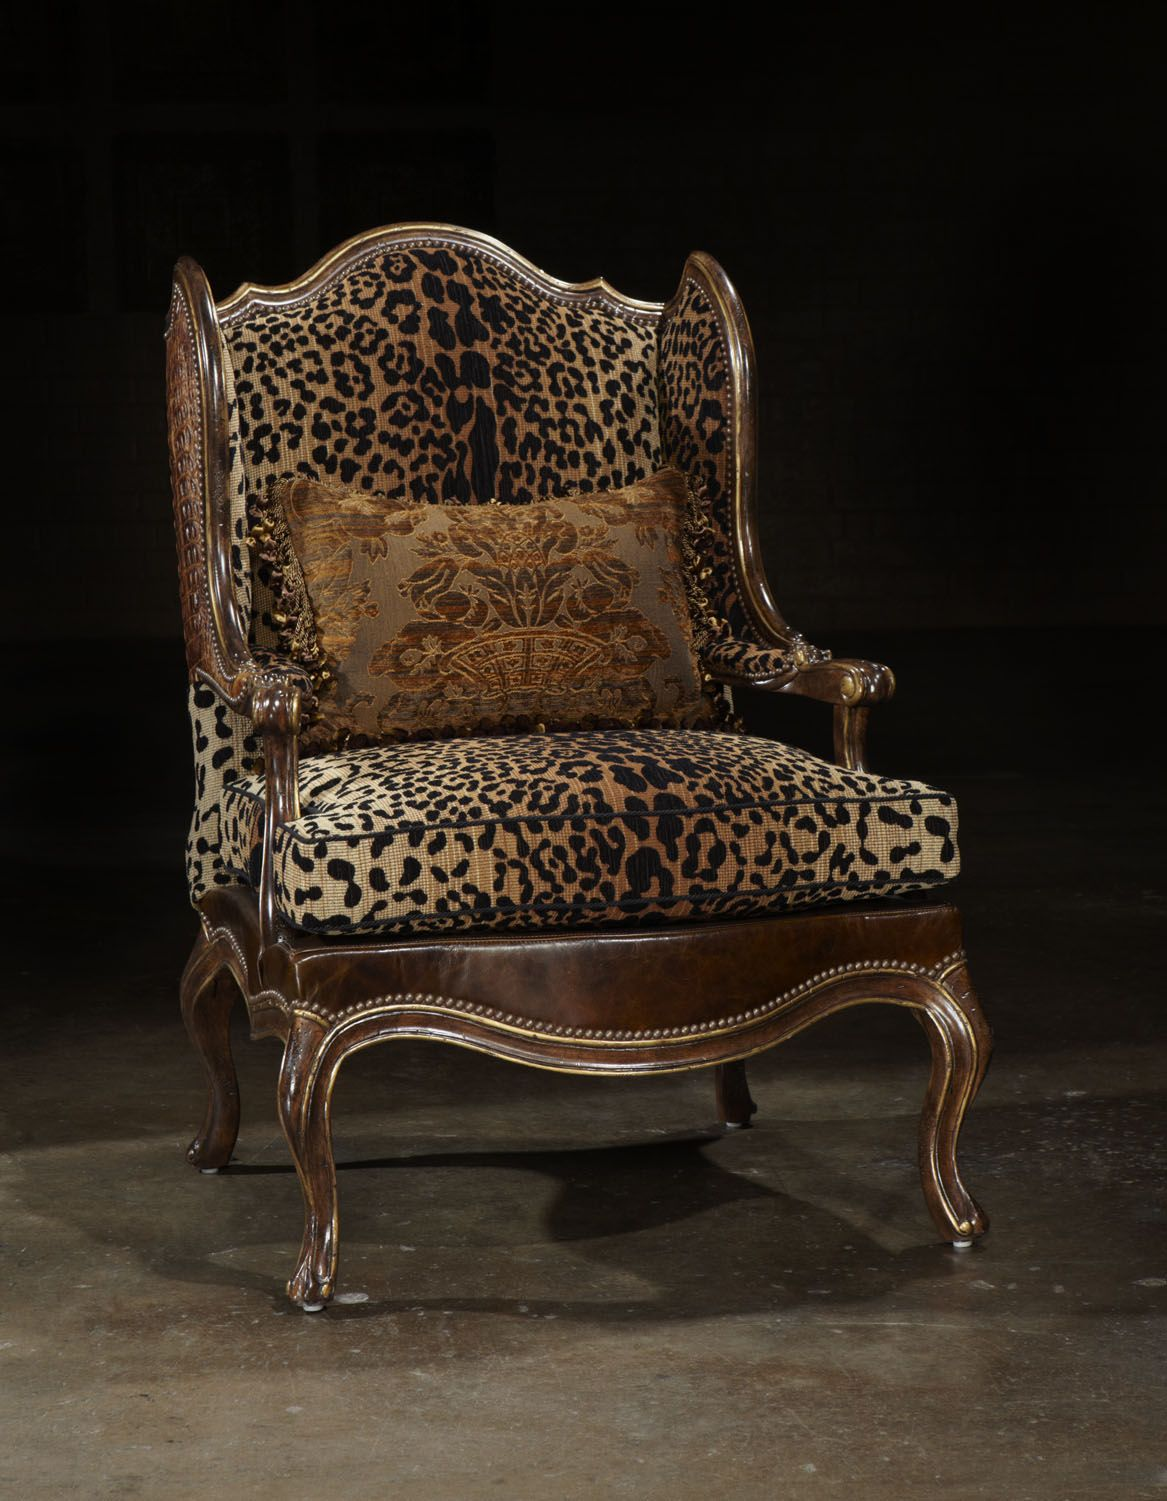 Love My Leopard Chair High End Furniture Bernadette Livingston Furniture Is  Simply The Best In Luxury Furniture And High End Home Furnishing.